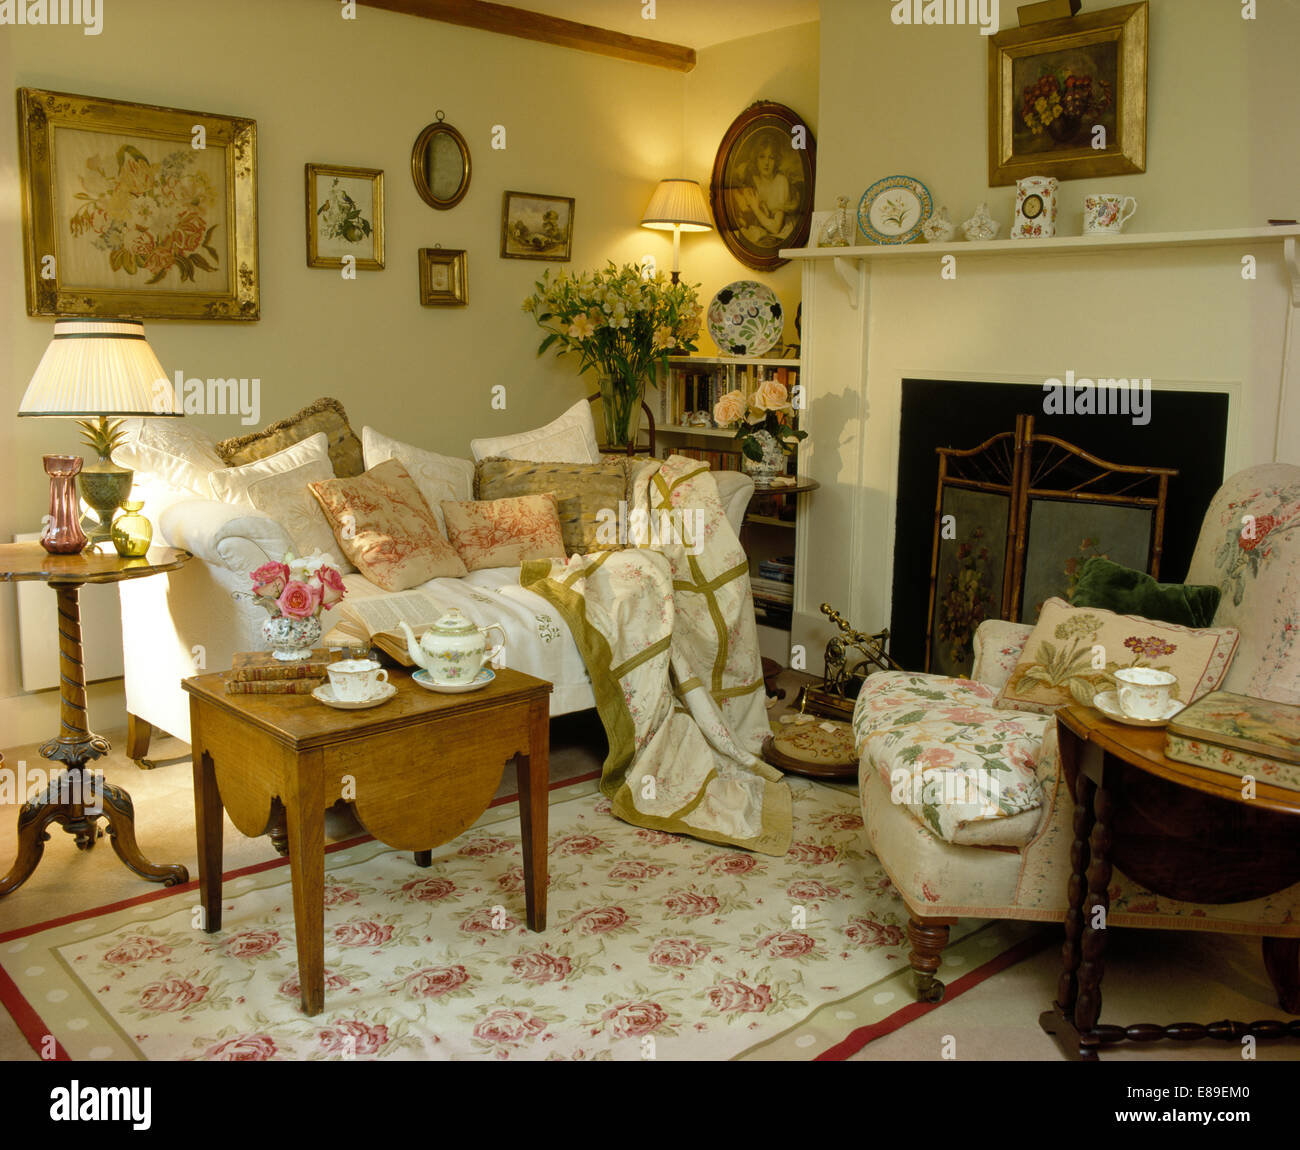 Attrayant Cushions And Throw On White Sofa In Cottage Living Room With Rose Patterned  Rug And Small